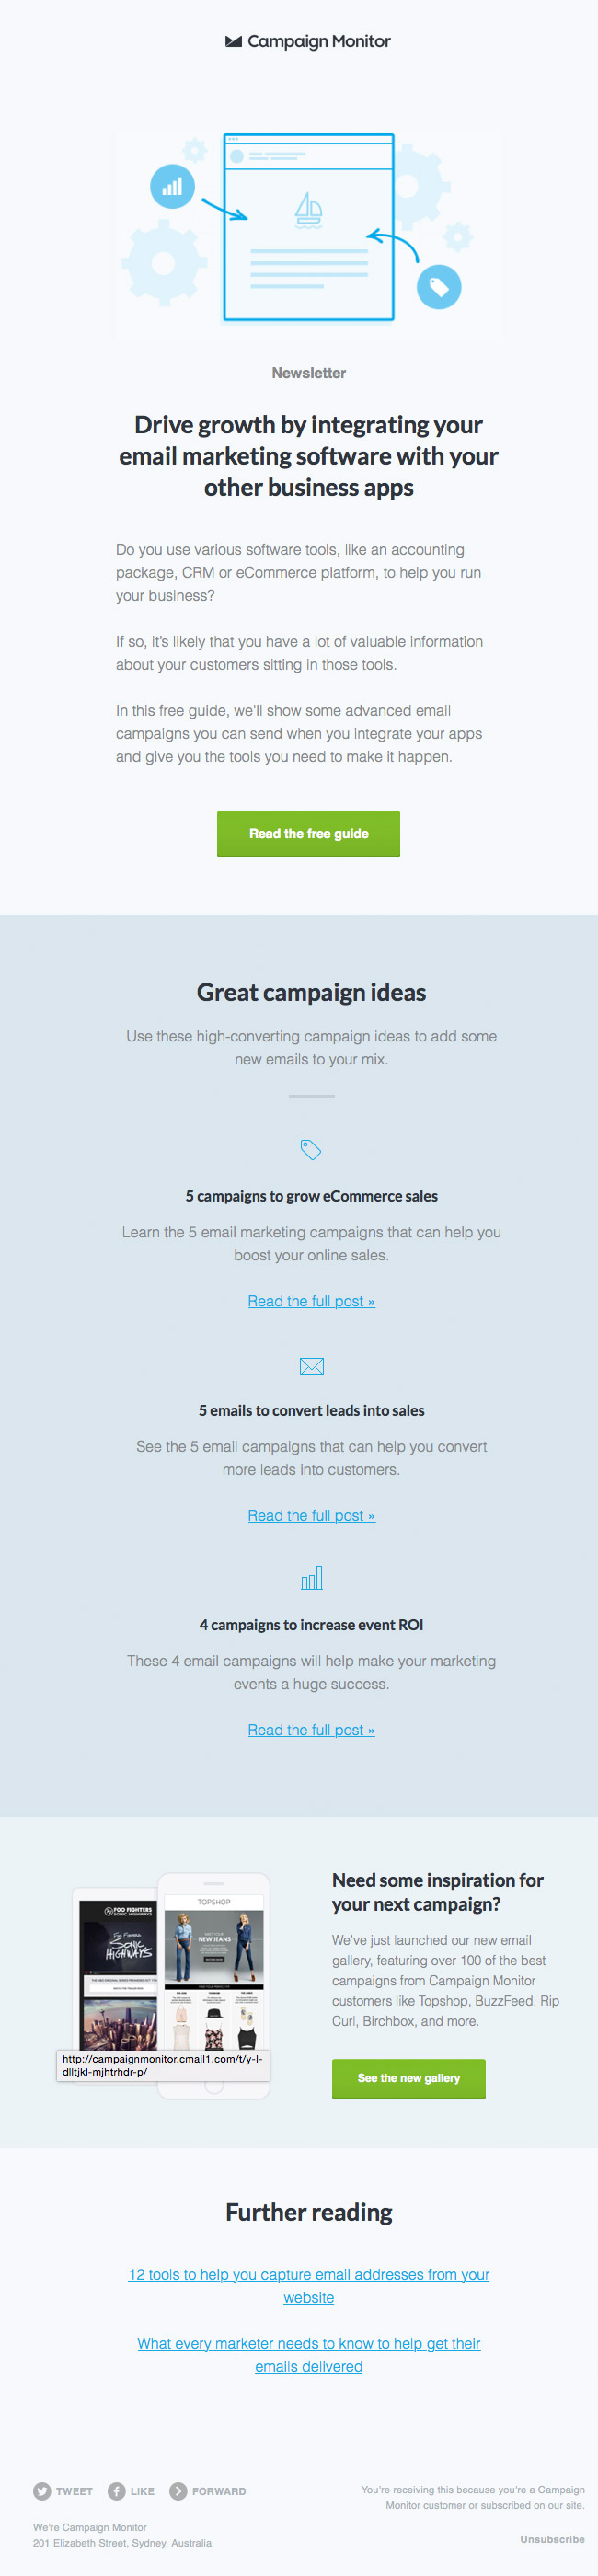 Campaign Monitor Newsletter May 2015